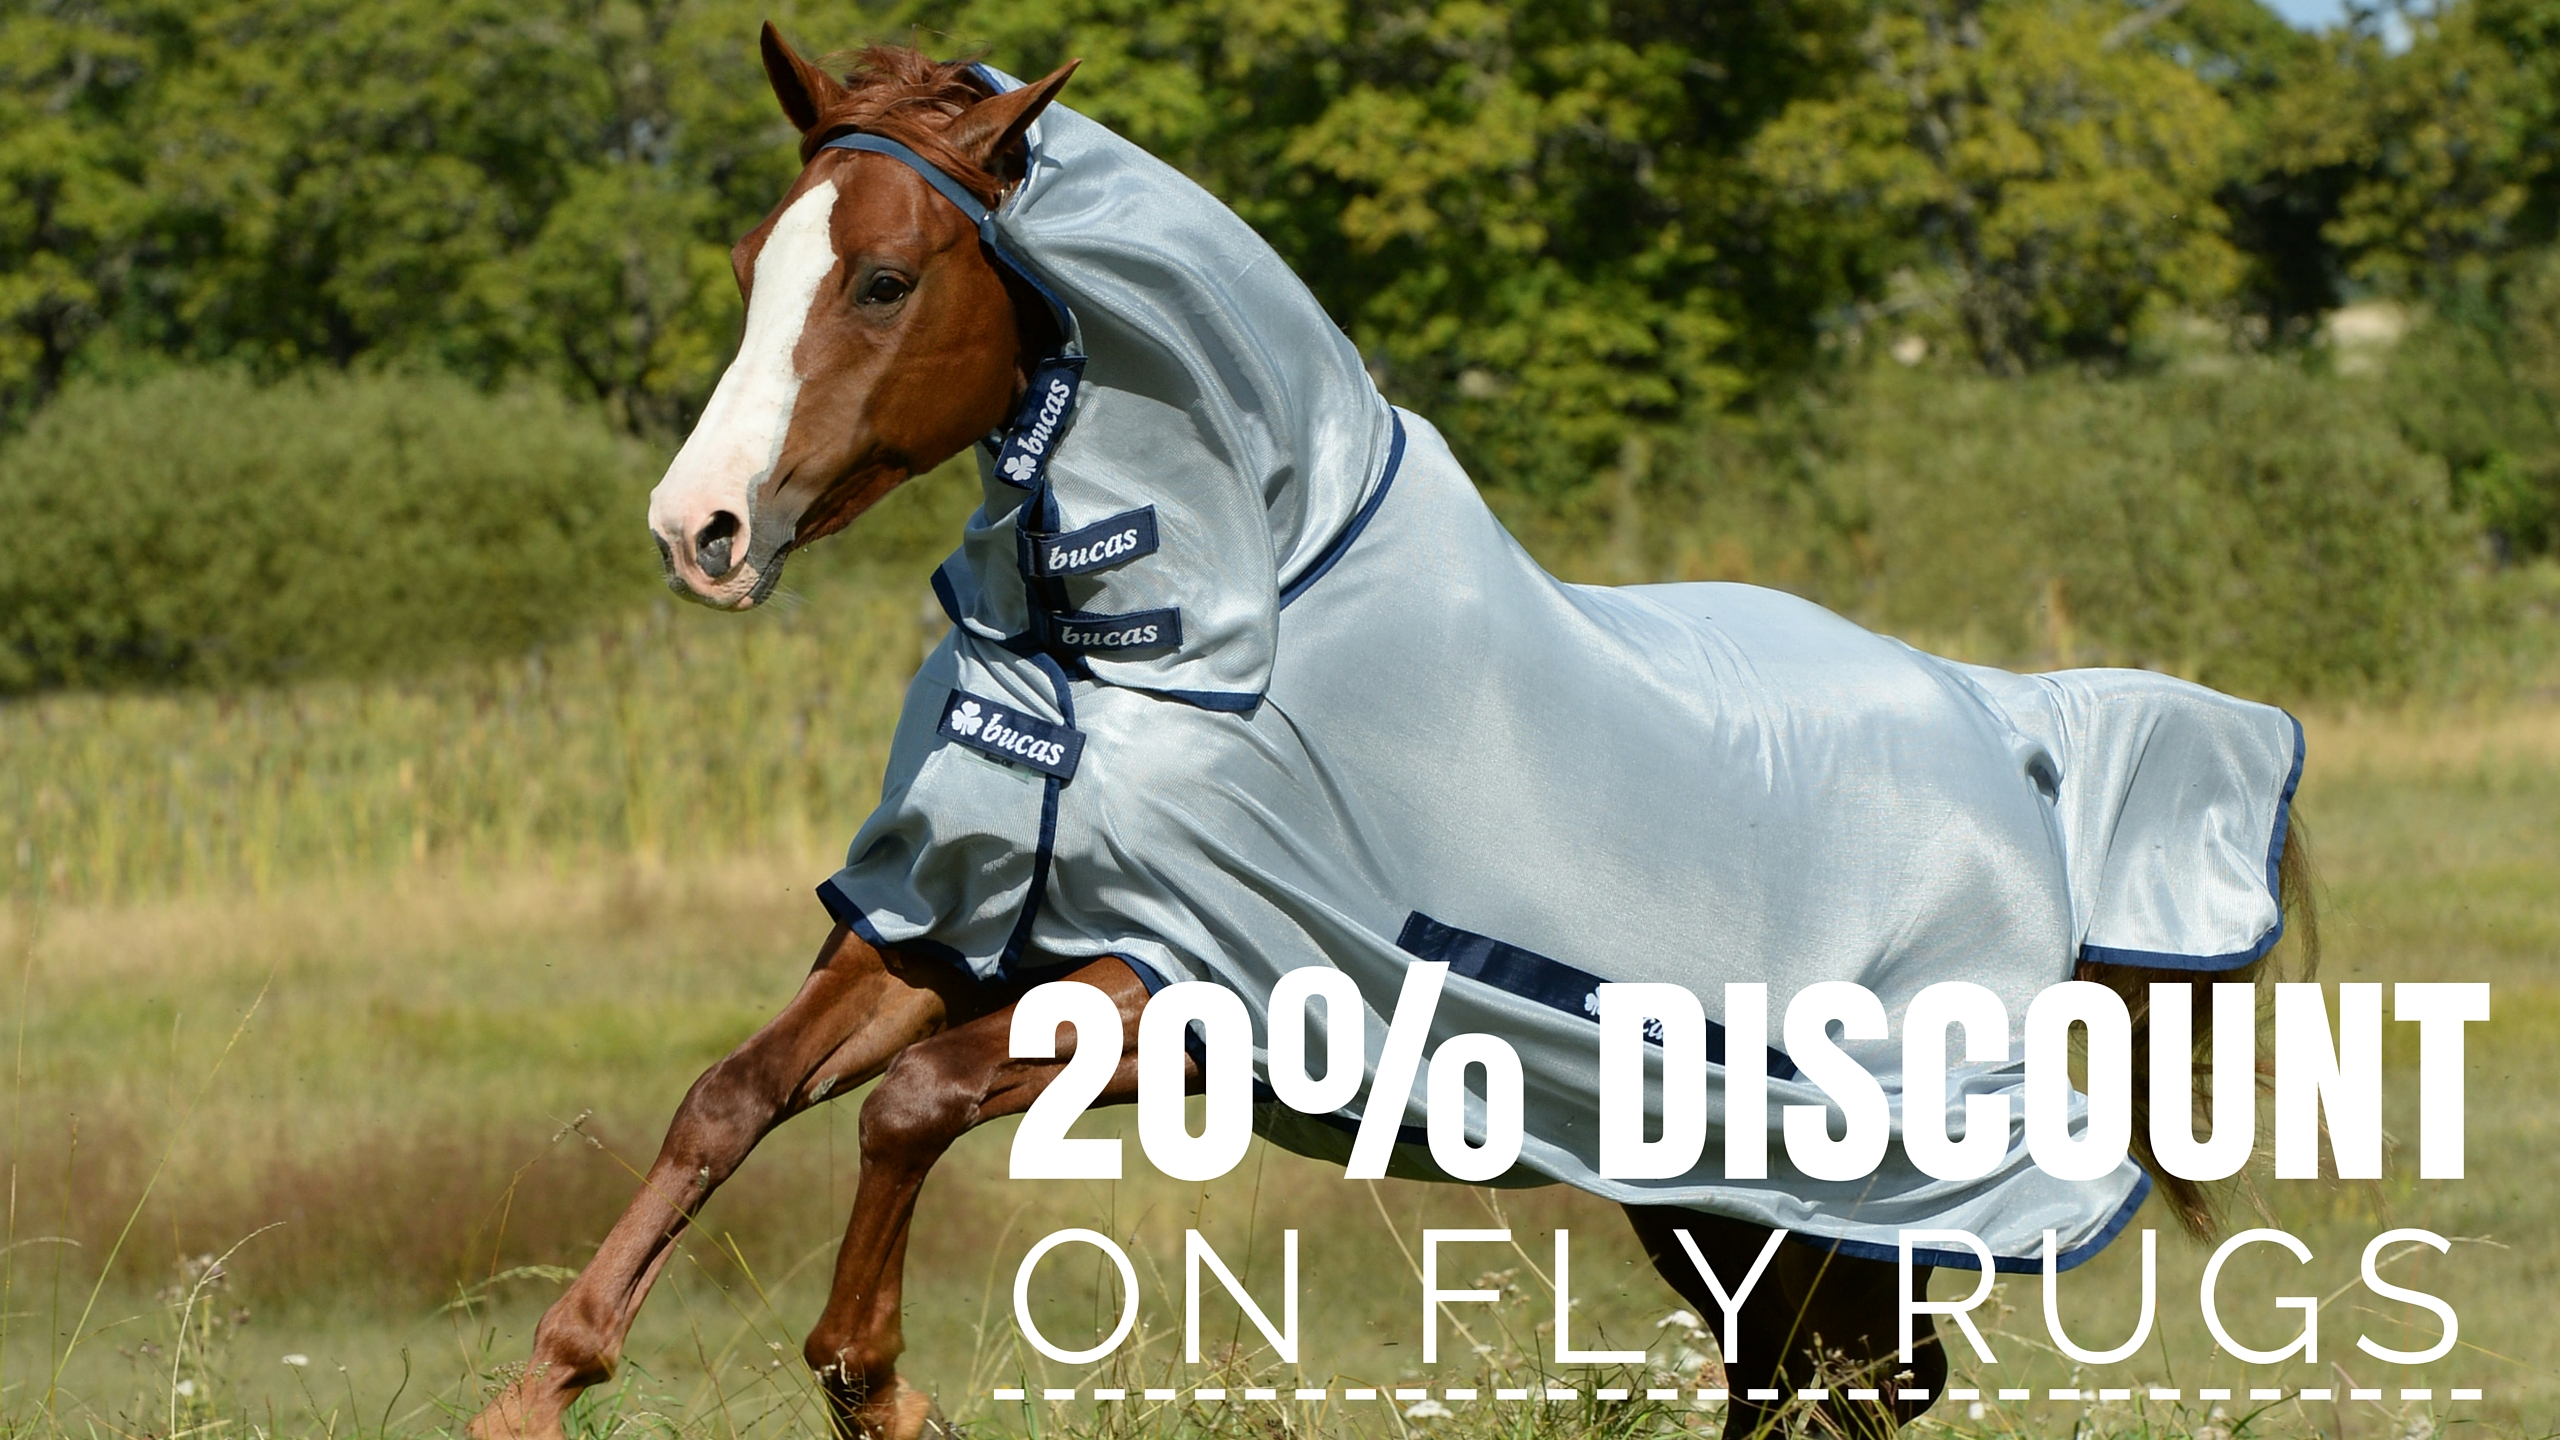 20% discount on Fly Rugs!